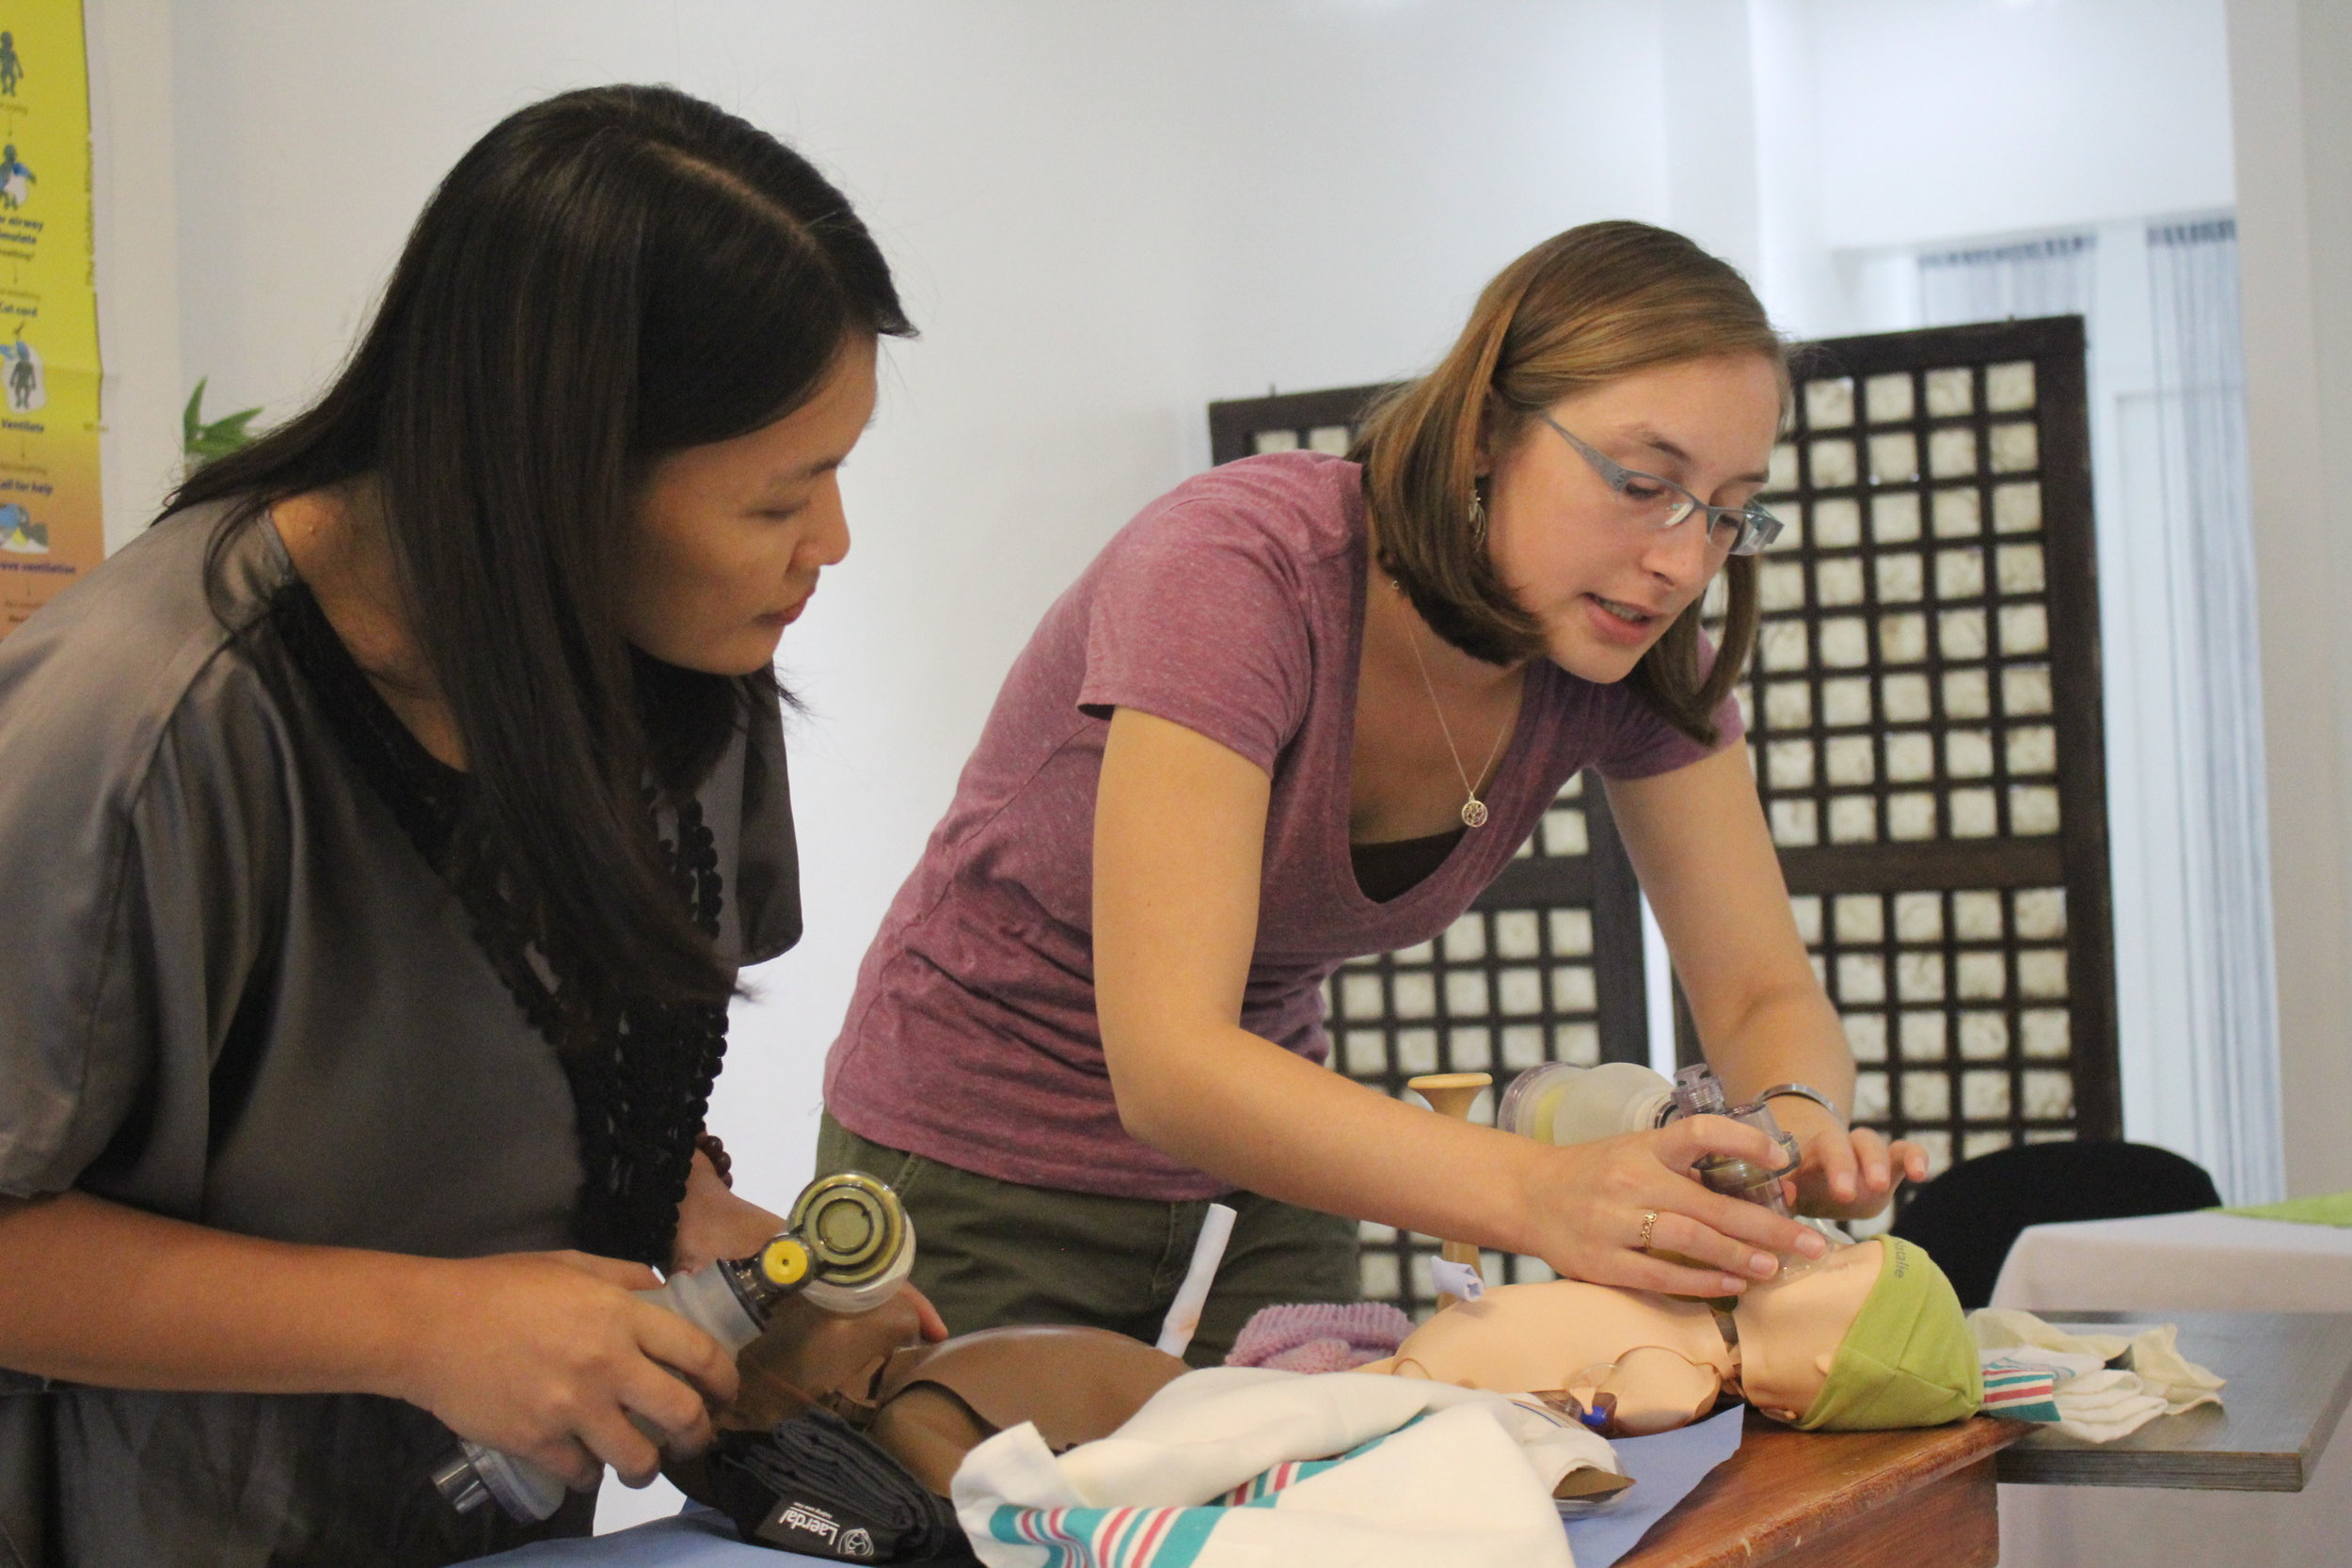 The best part of this diploma program is the contribution the Diploma Scholars make to global maternal child health, both now and into the future, by elevating the skills of midwives in vulnerable countries where the current rate of neonatal and maternal deaths is unacceptably high. Shown here, Diploma Scholar Kluane demonstrates proper technique for neonatal resuscitation during capacity building training for midwives in a recovering disaster zone. After she leaves, they will continue the trainings.